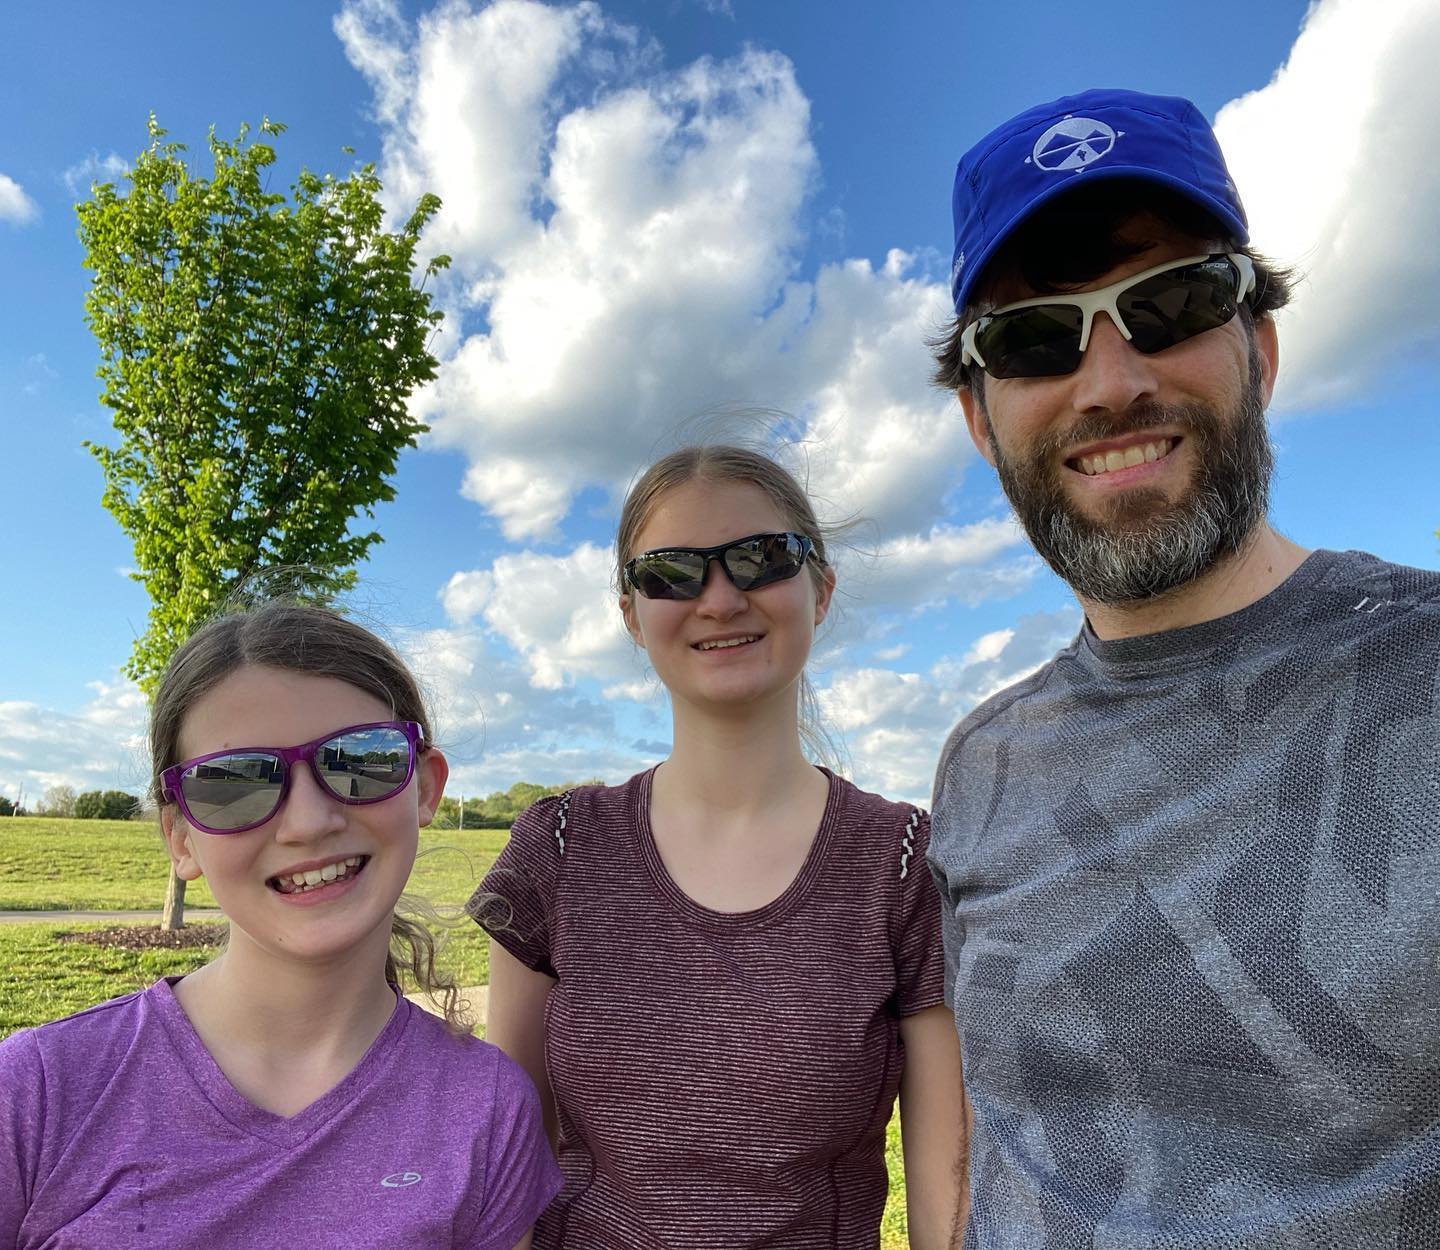 """The girls just finished their first ever speed workout at the """"track"""" behind the Bellevue Library. They've been working really hard on their running over the past couple of months. Very proud of them. #family #running"""